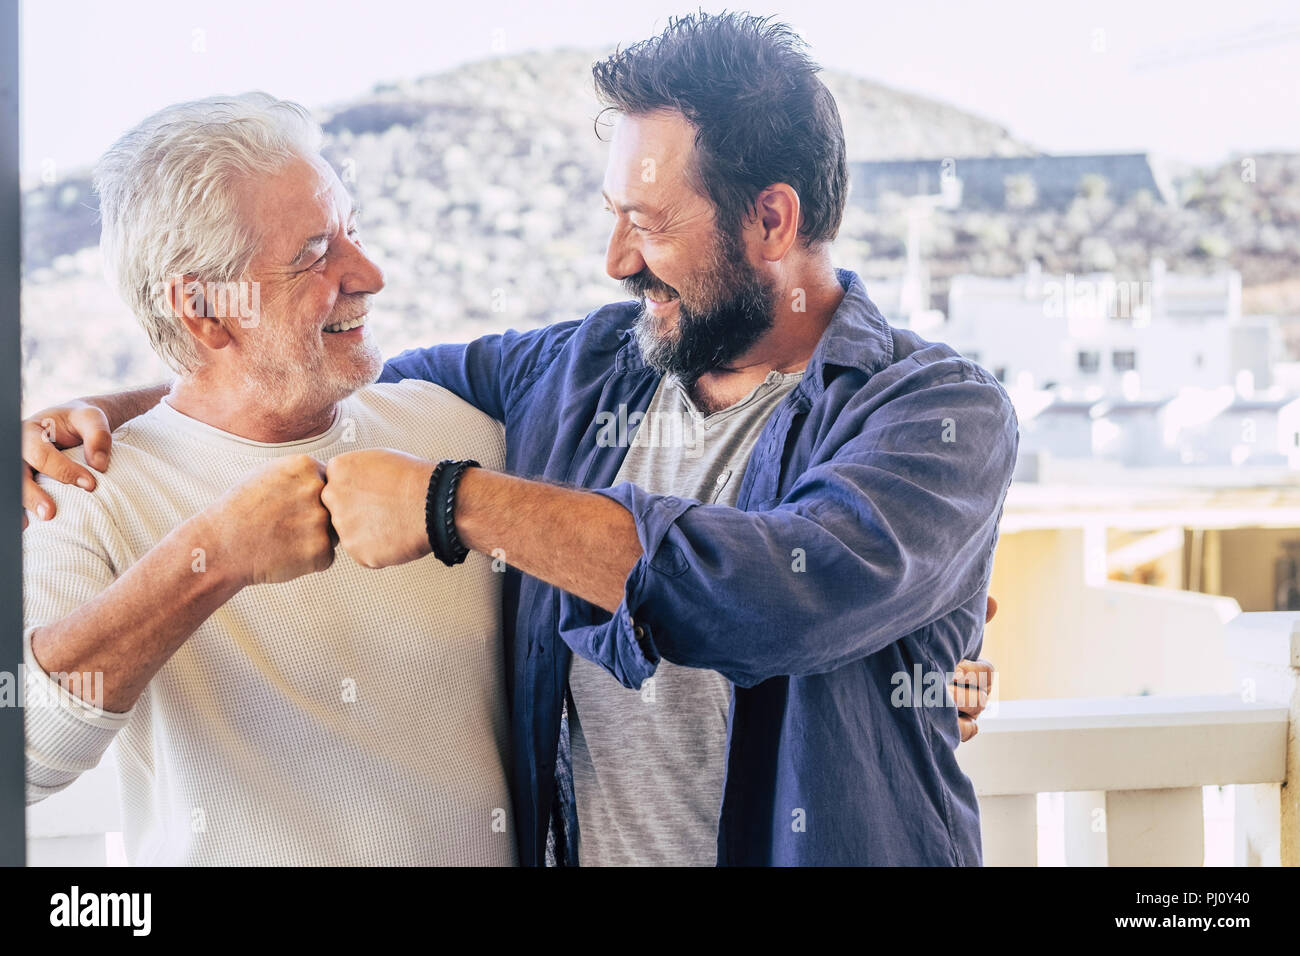 Two happy male friends father and son having a good time together giving friendly punch eachother. city and mountains in background. caucasian people  - Stock Image